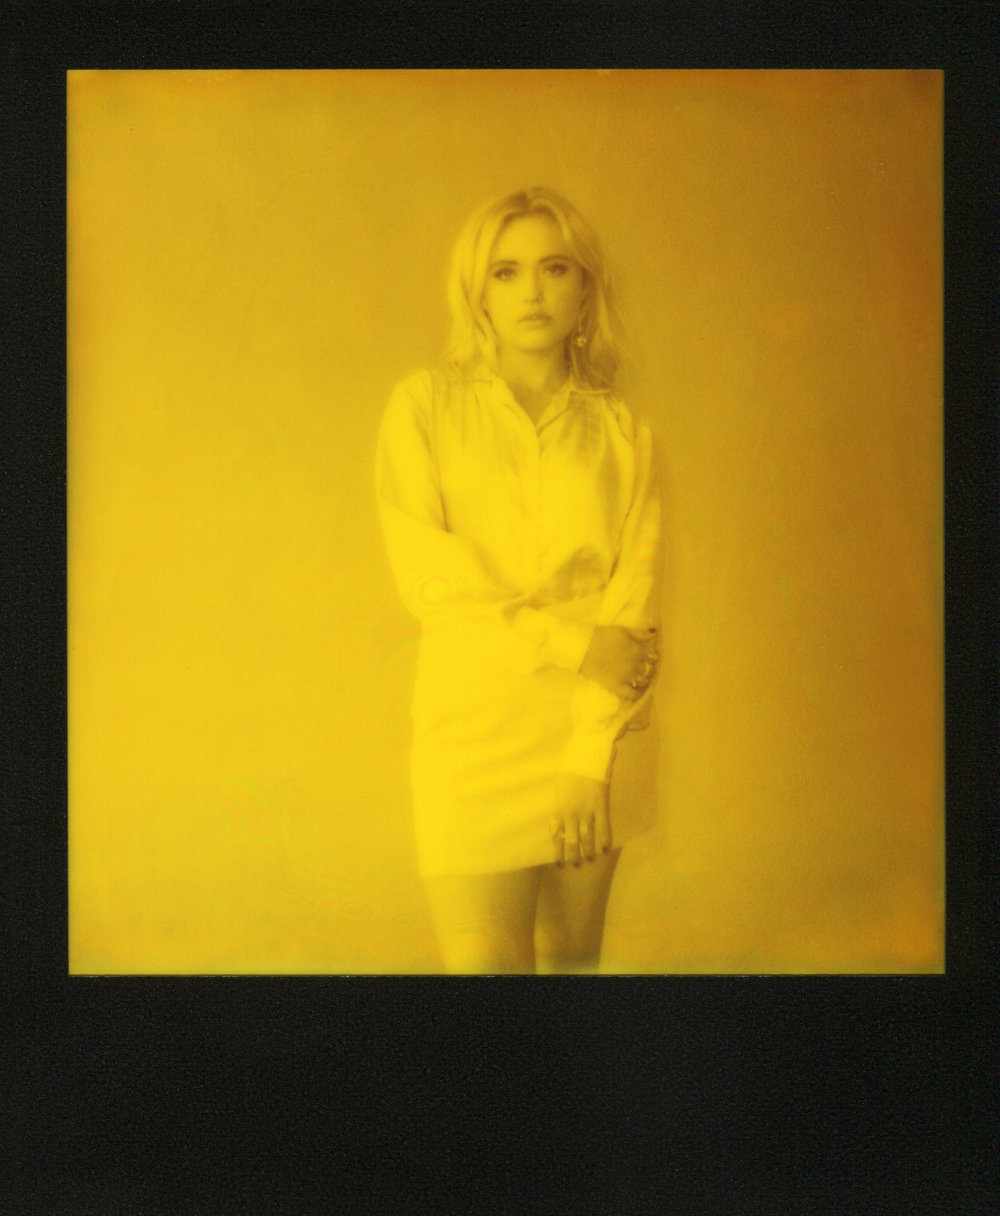 Lauren-Yellow-Polaroid-casenruiz.jpg